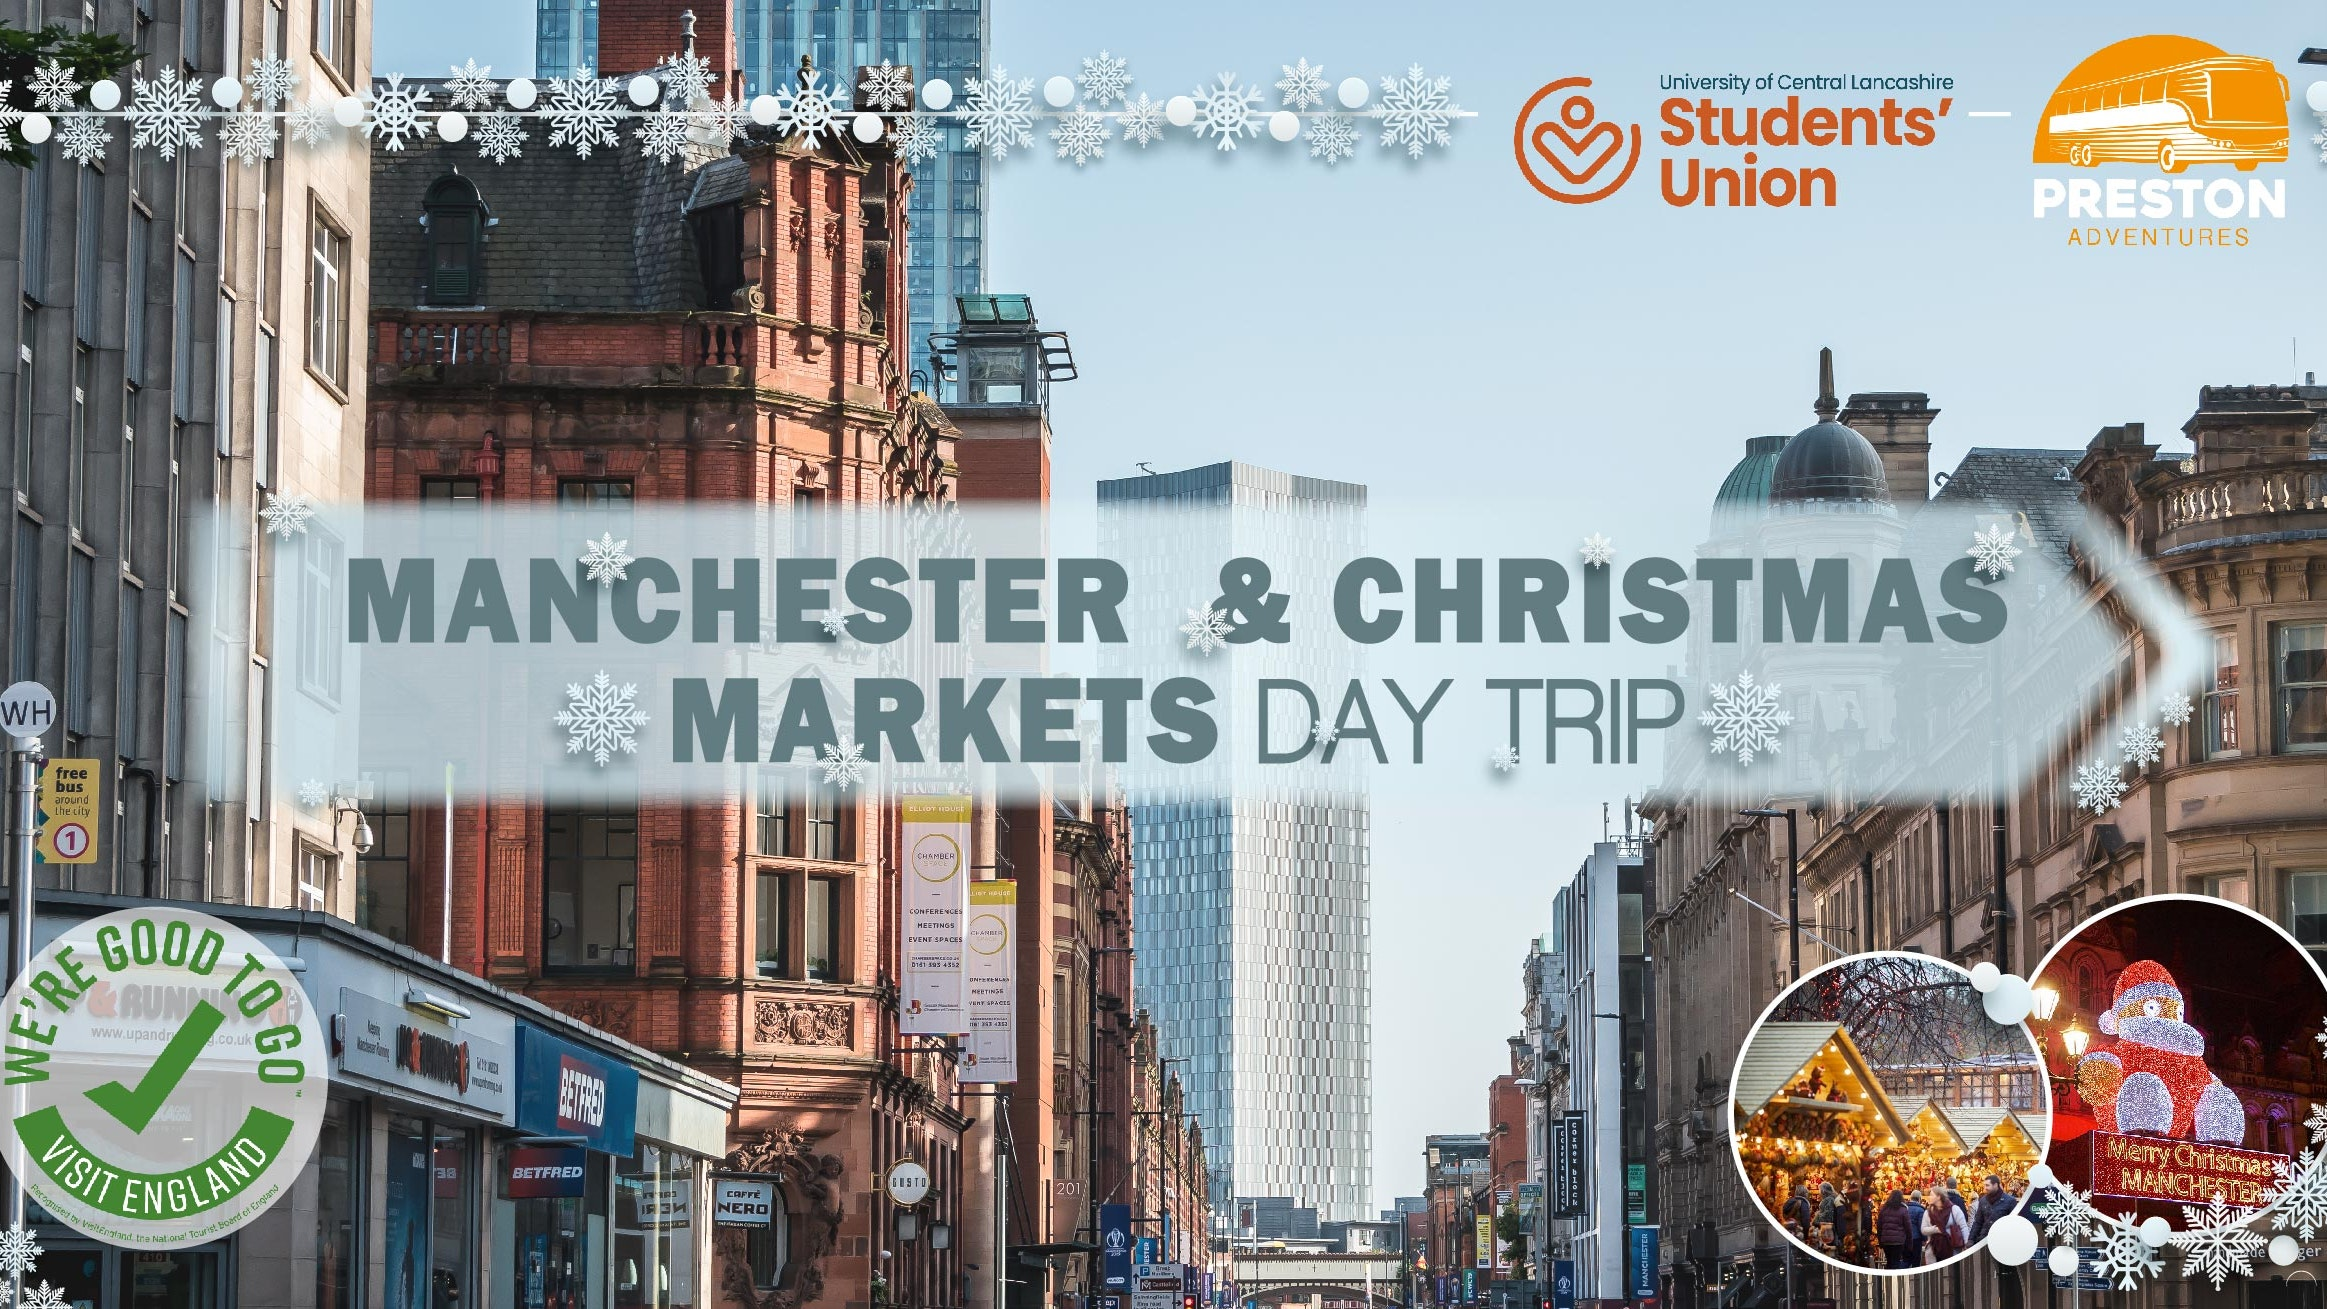 Manchester & Christmas Markets – From Burnley Campus